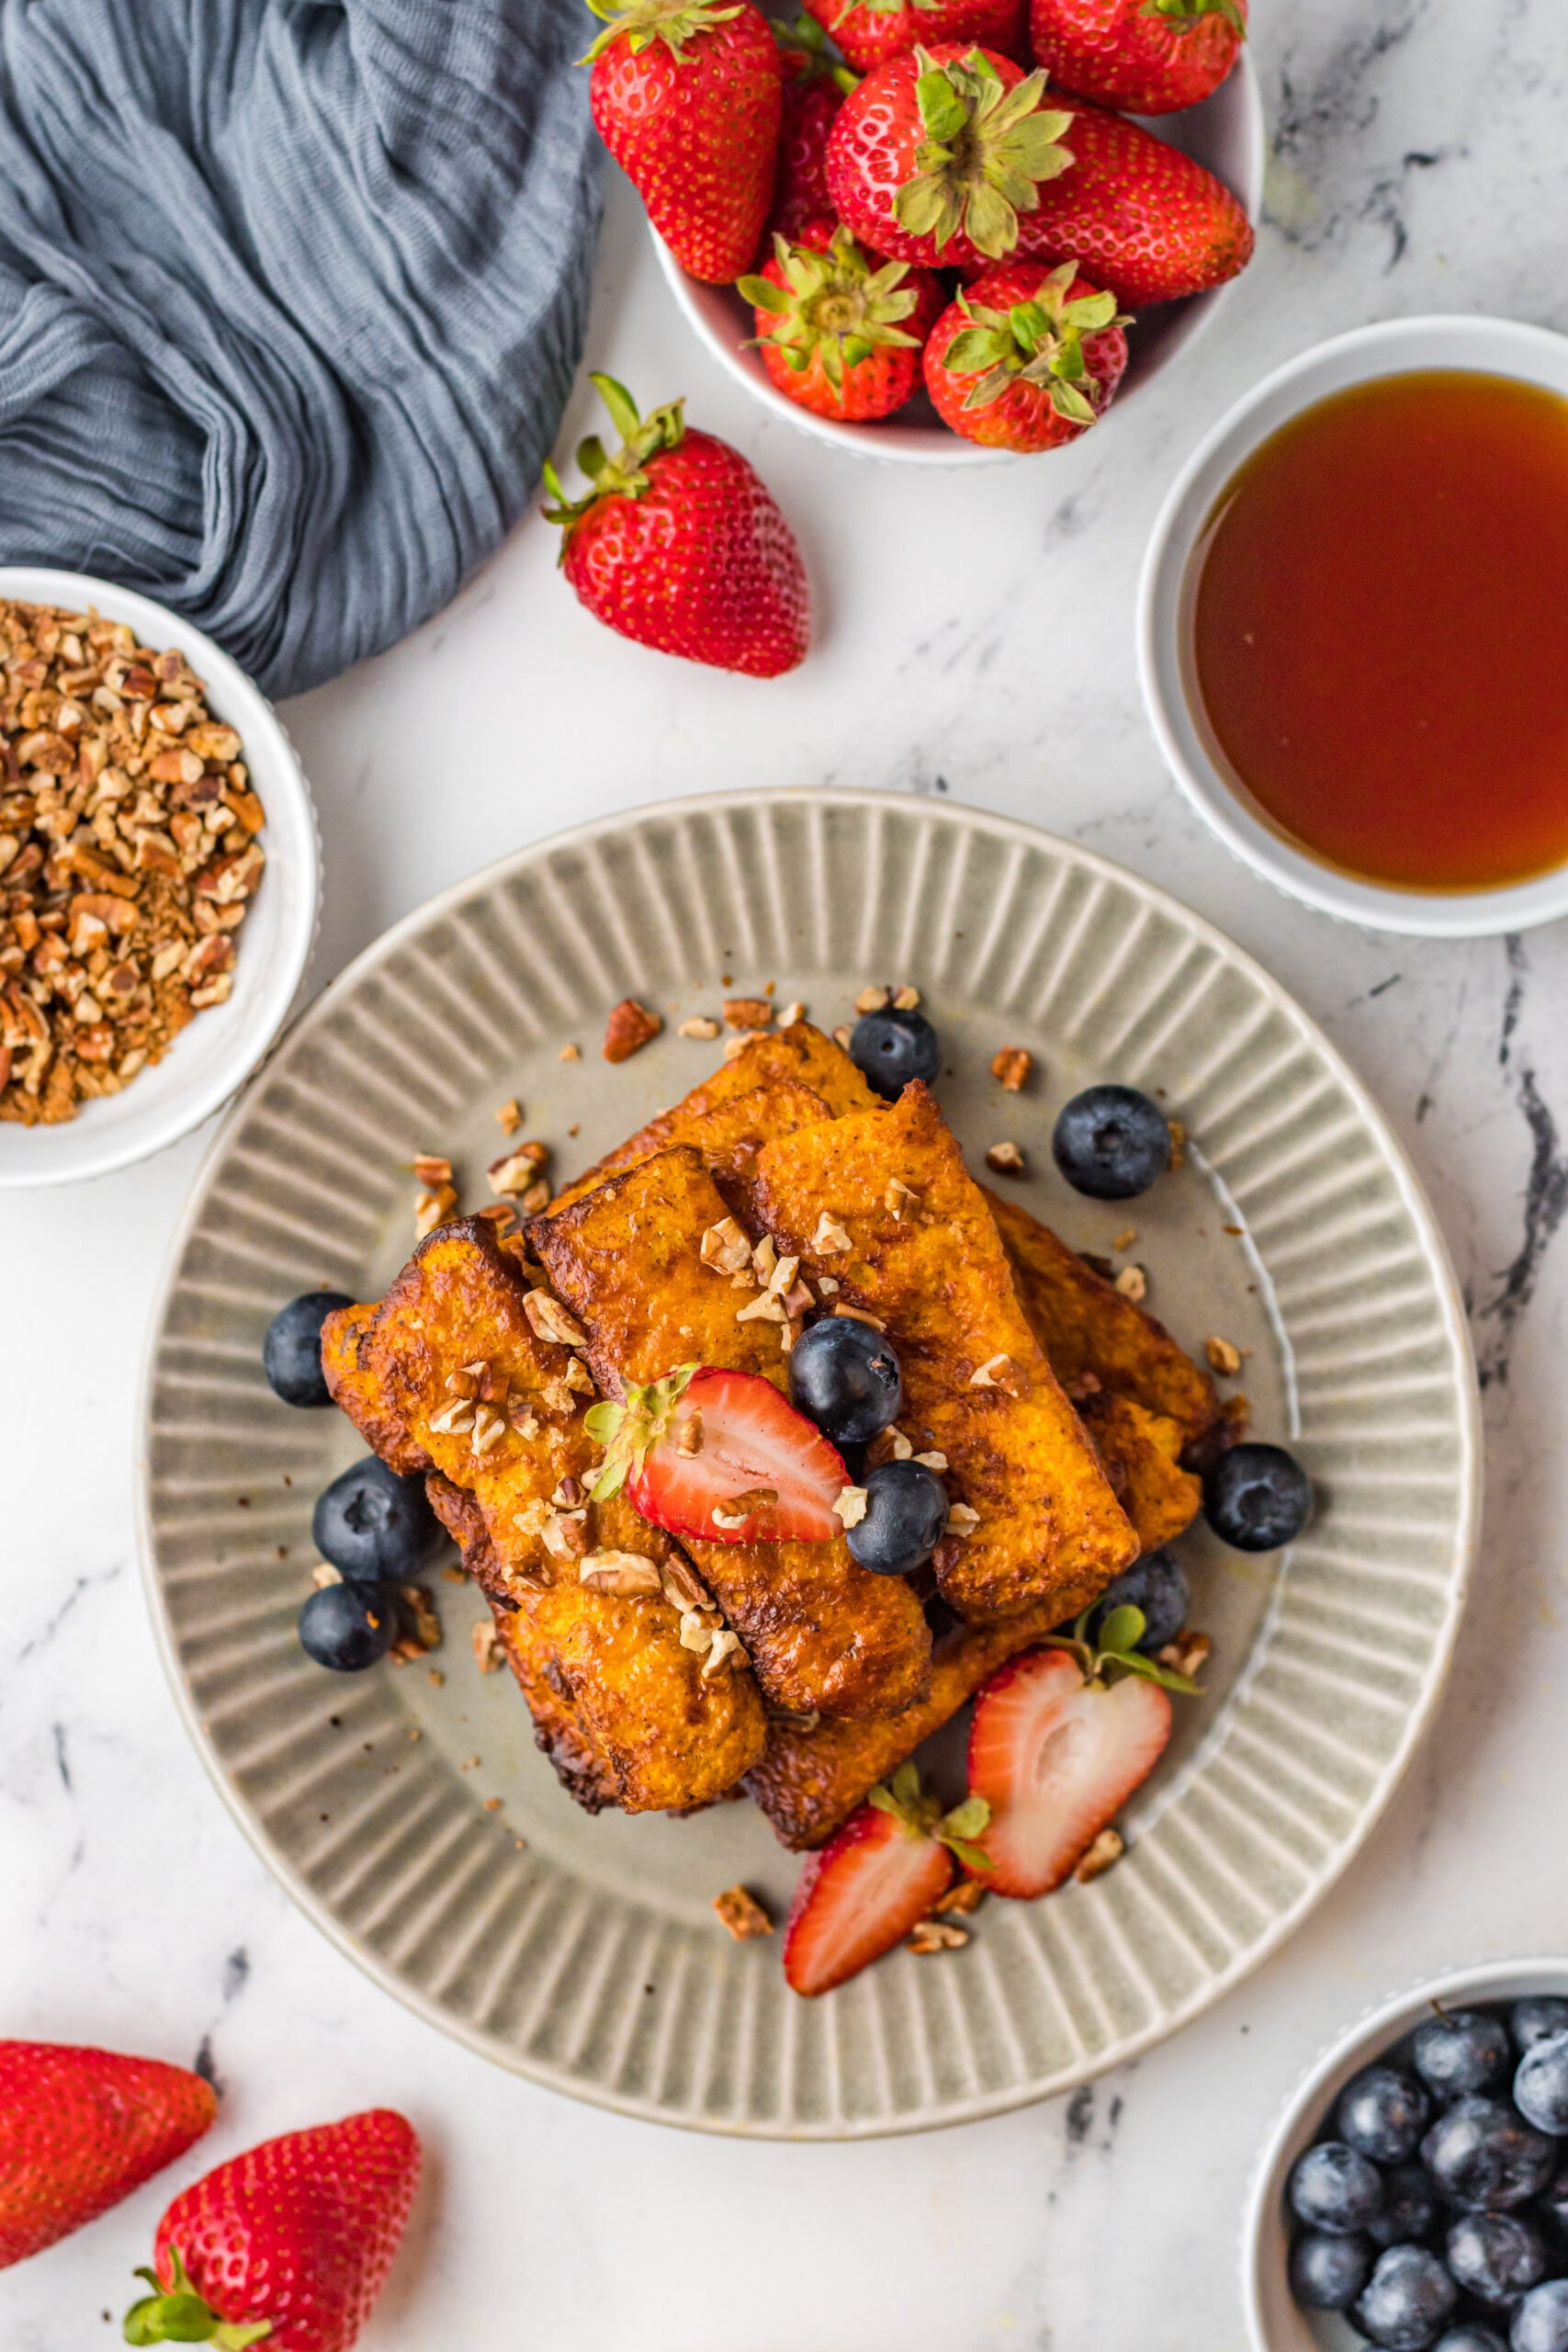 A plate of french toast sticks with fresh fruit.